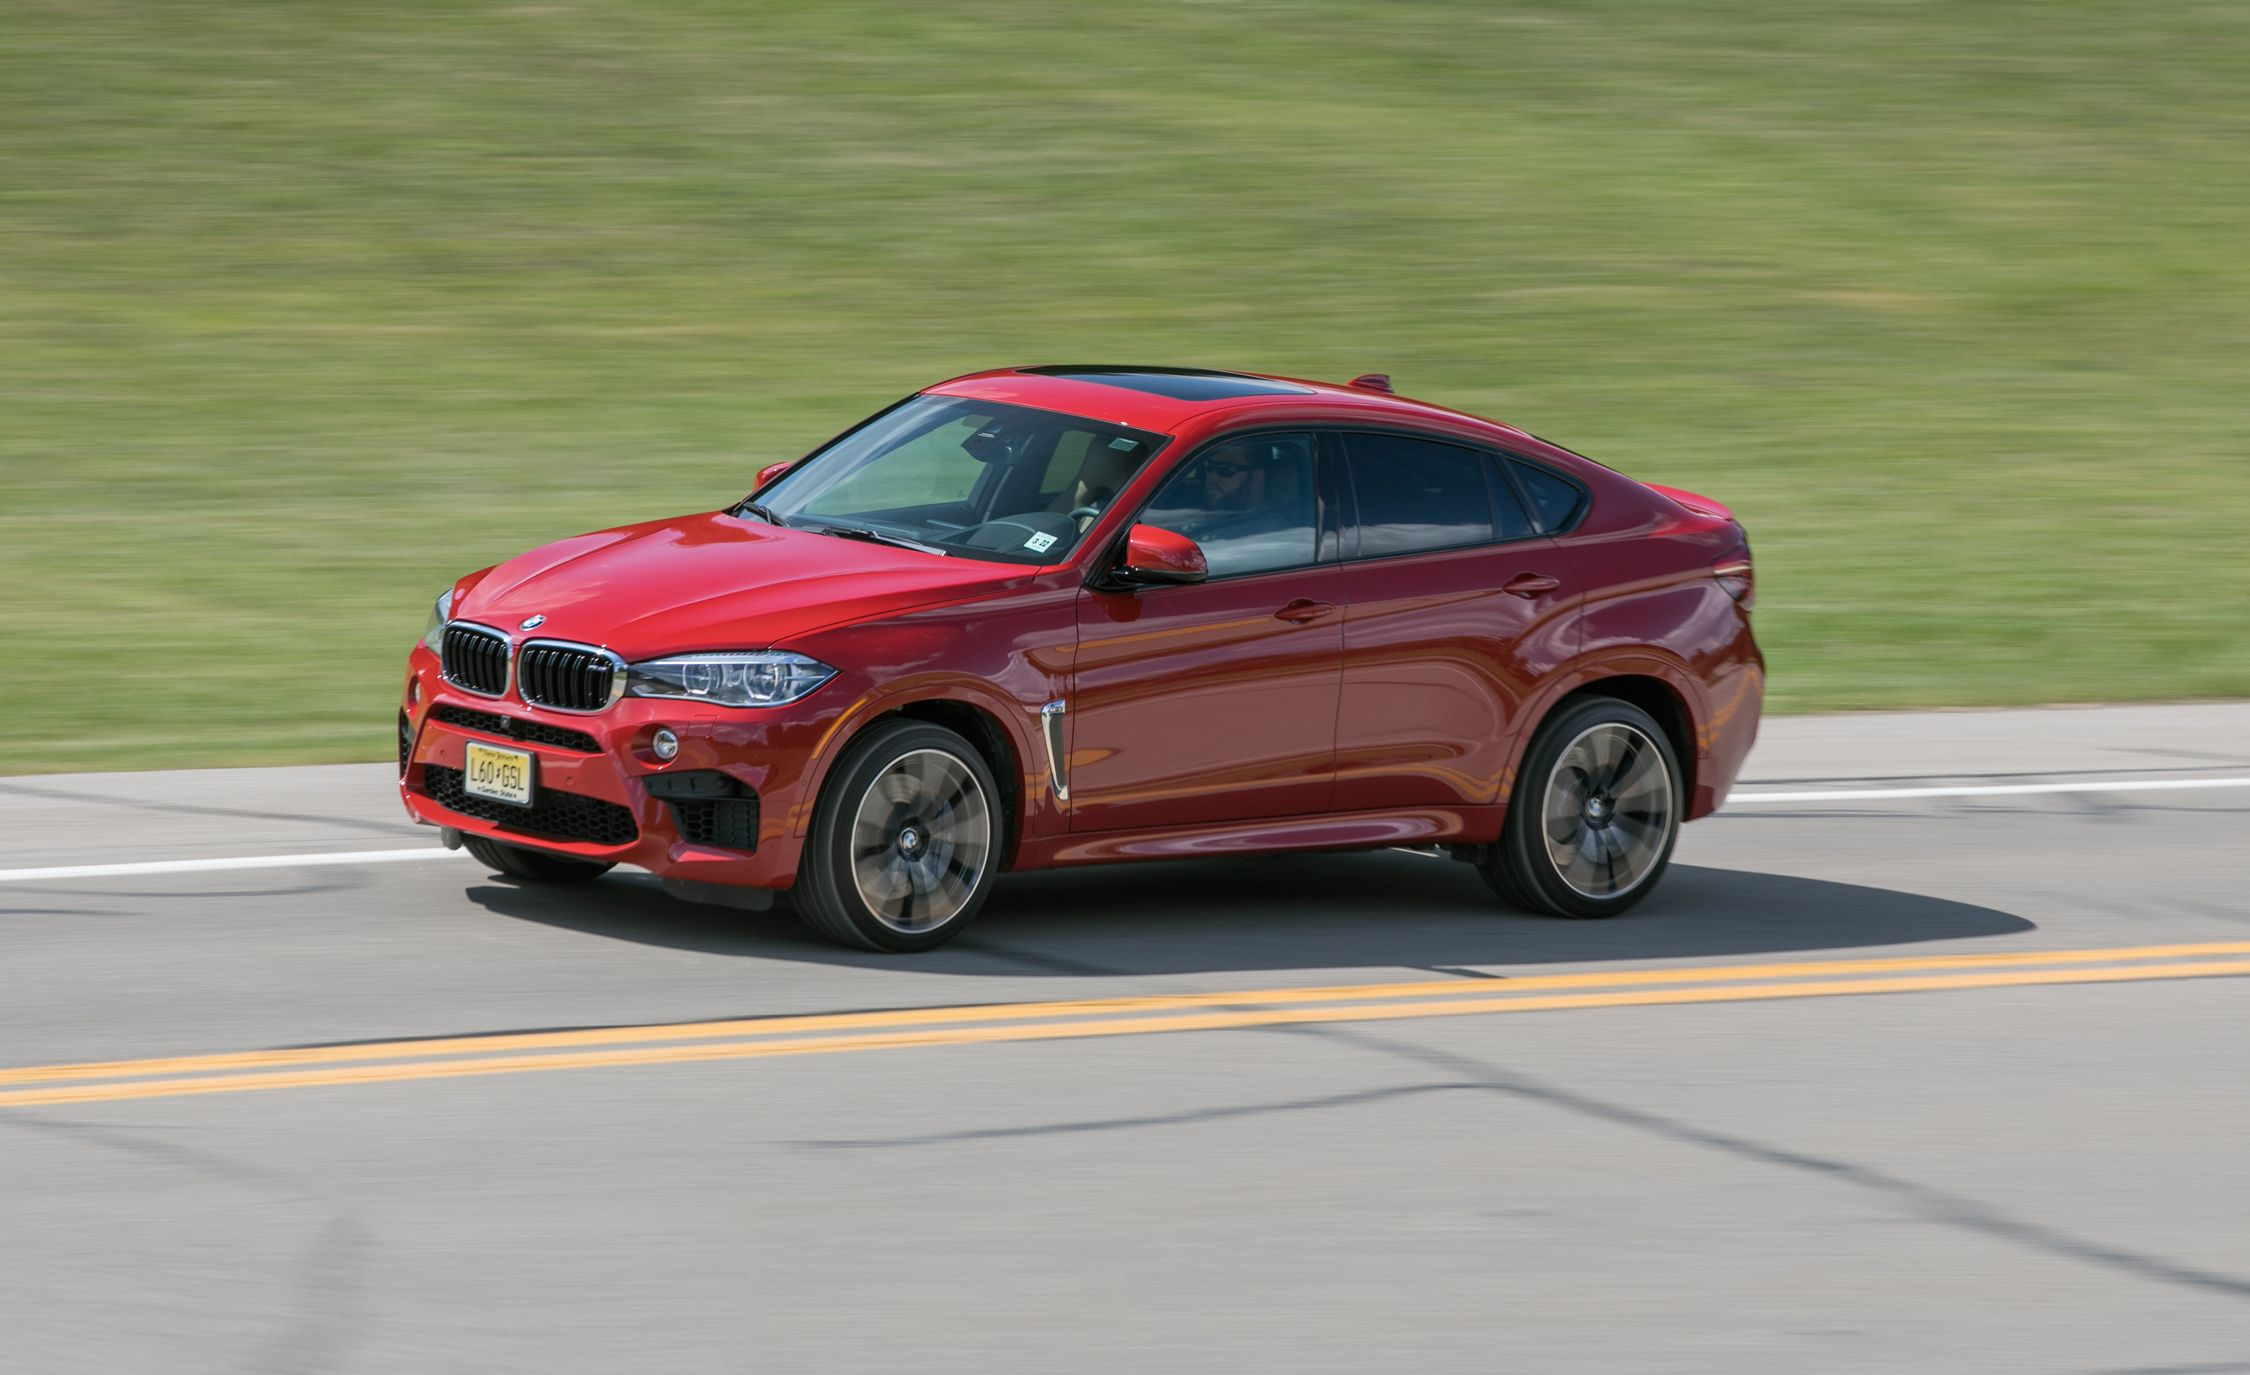 bmw x6 m reviews bmw x6 m price photos and specs car and driver. Black Bedroom Furniture Sets. Home Design Ideas